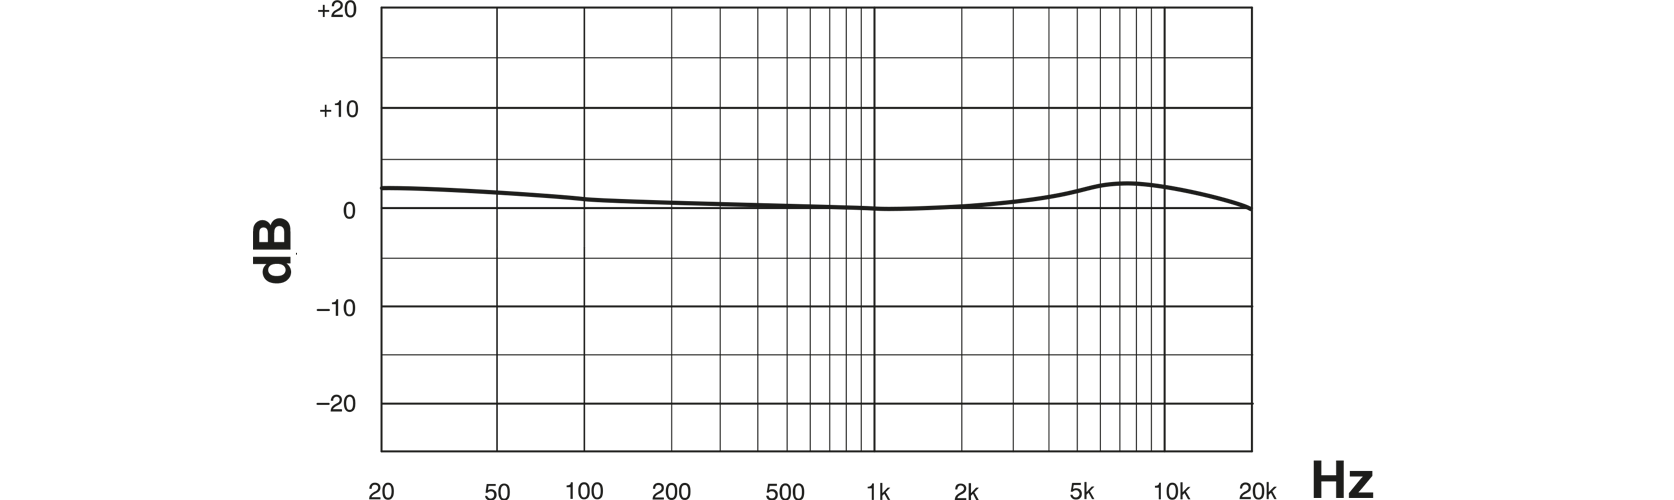 Shure KSM32 Cardioid Condenser Microphone (Charcoal or Champagne) Frequency Response Curve Image